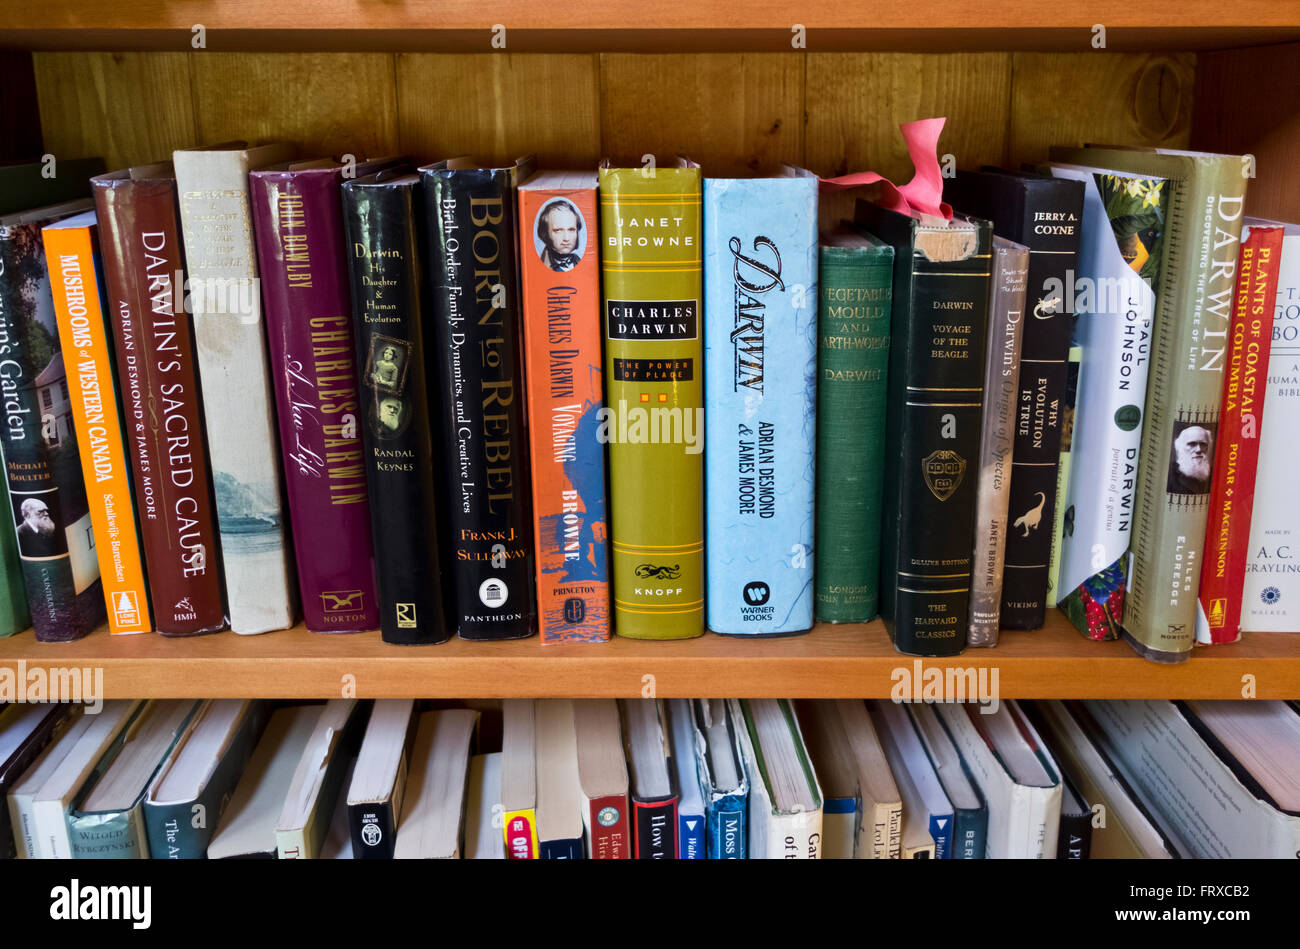 Bookshelf with books about and by Charles Darwin and his theory of evolution. - Stock Image